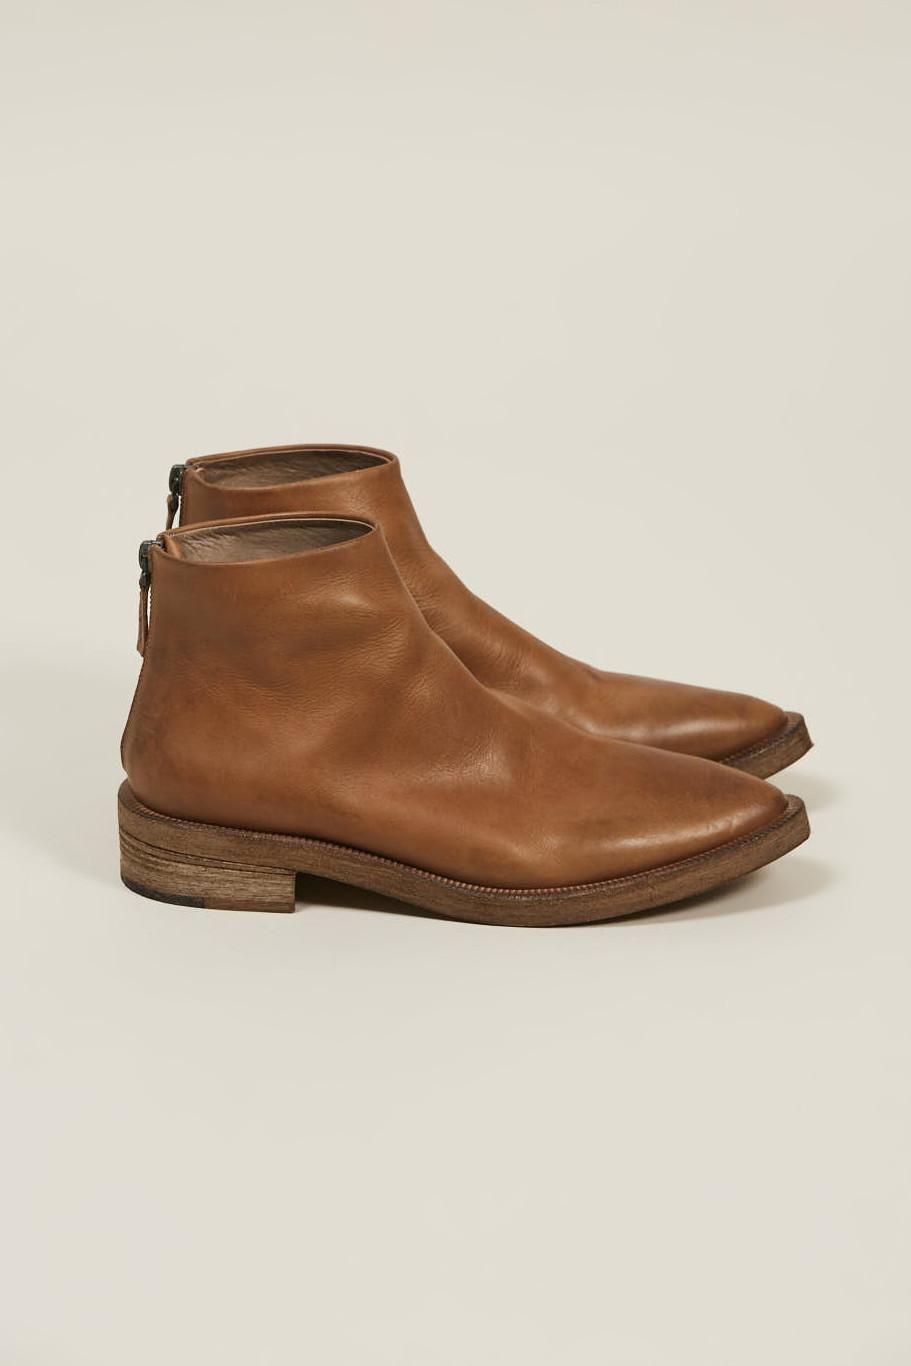 Marsèll zipped ankle boots wiki online oZVgs9V5